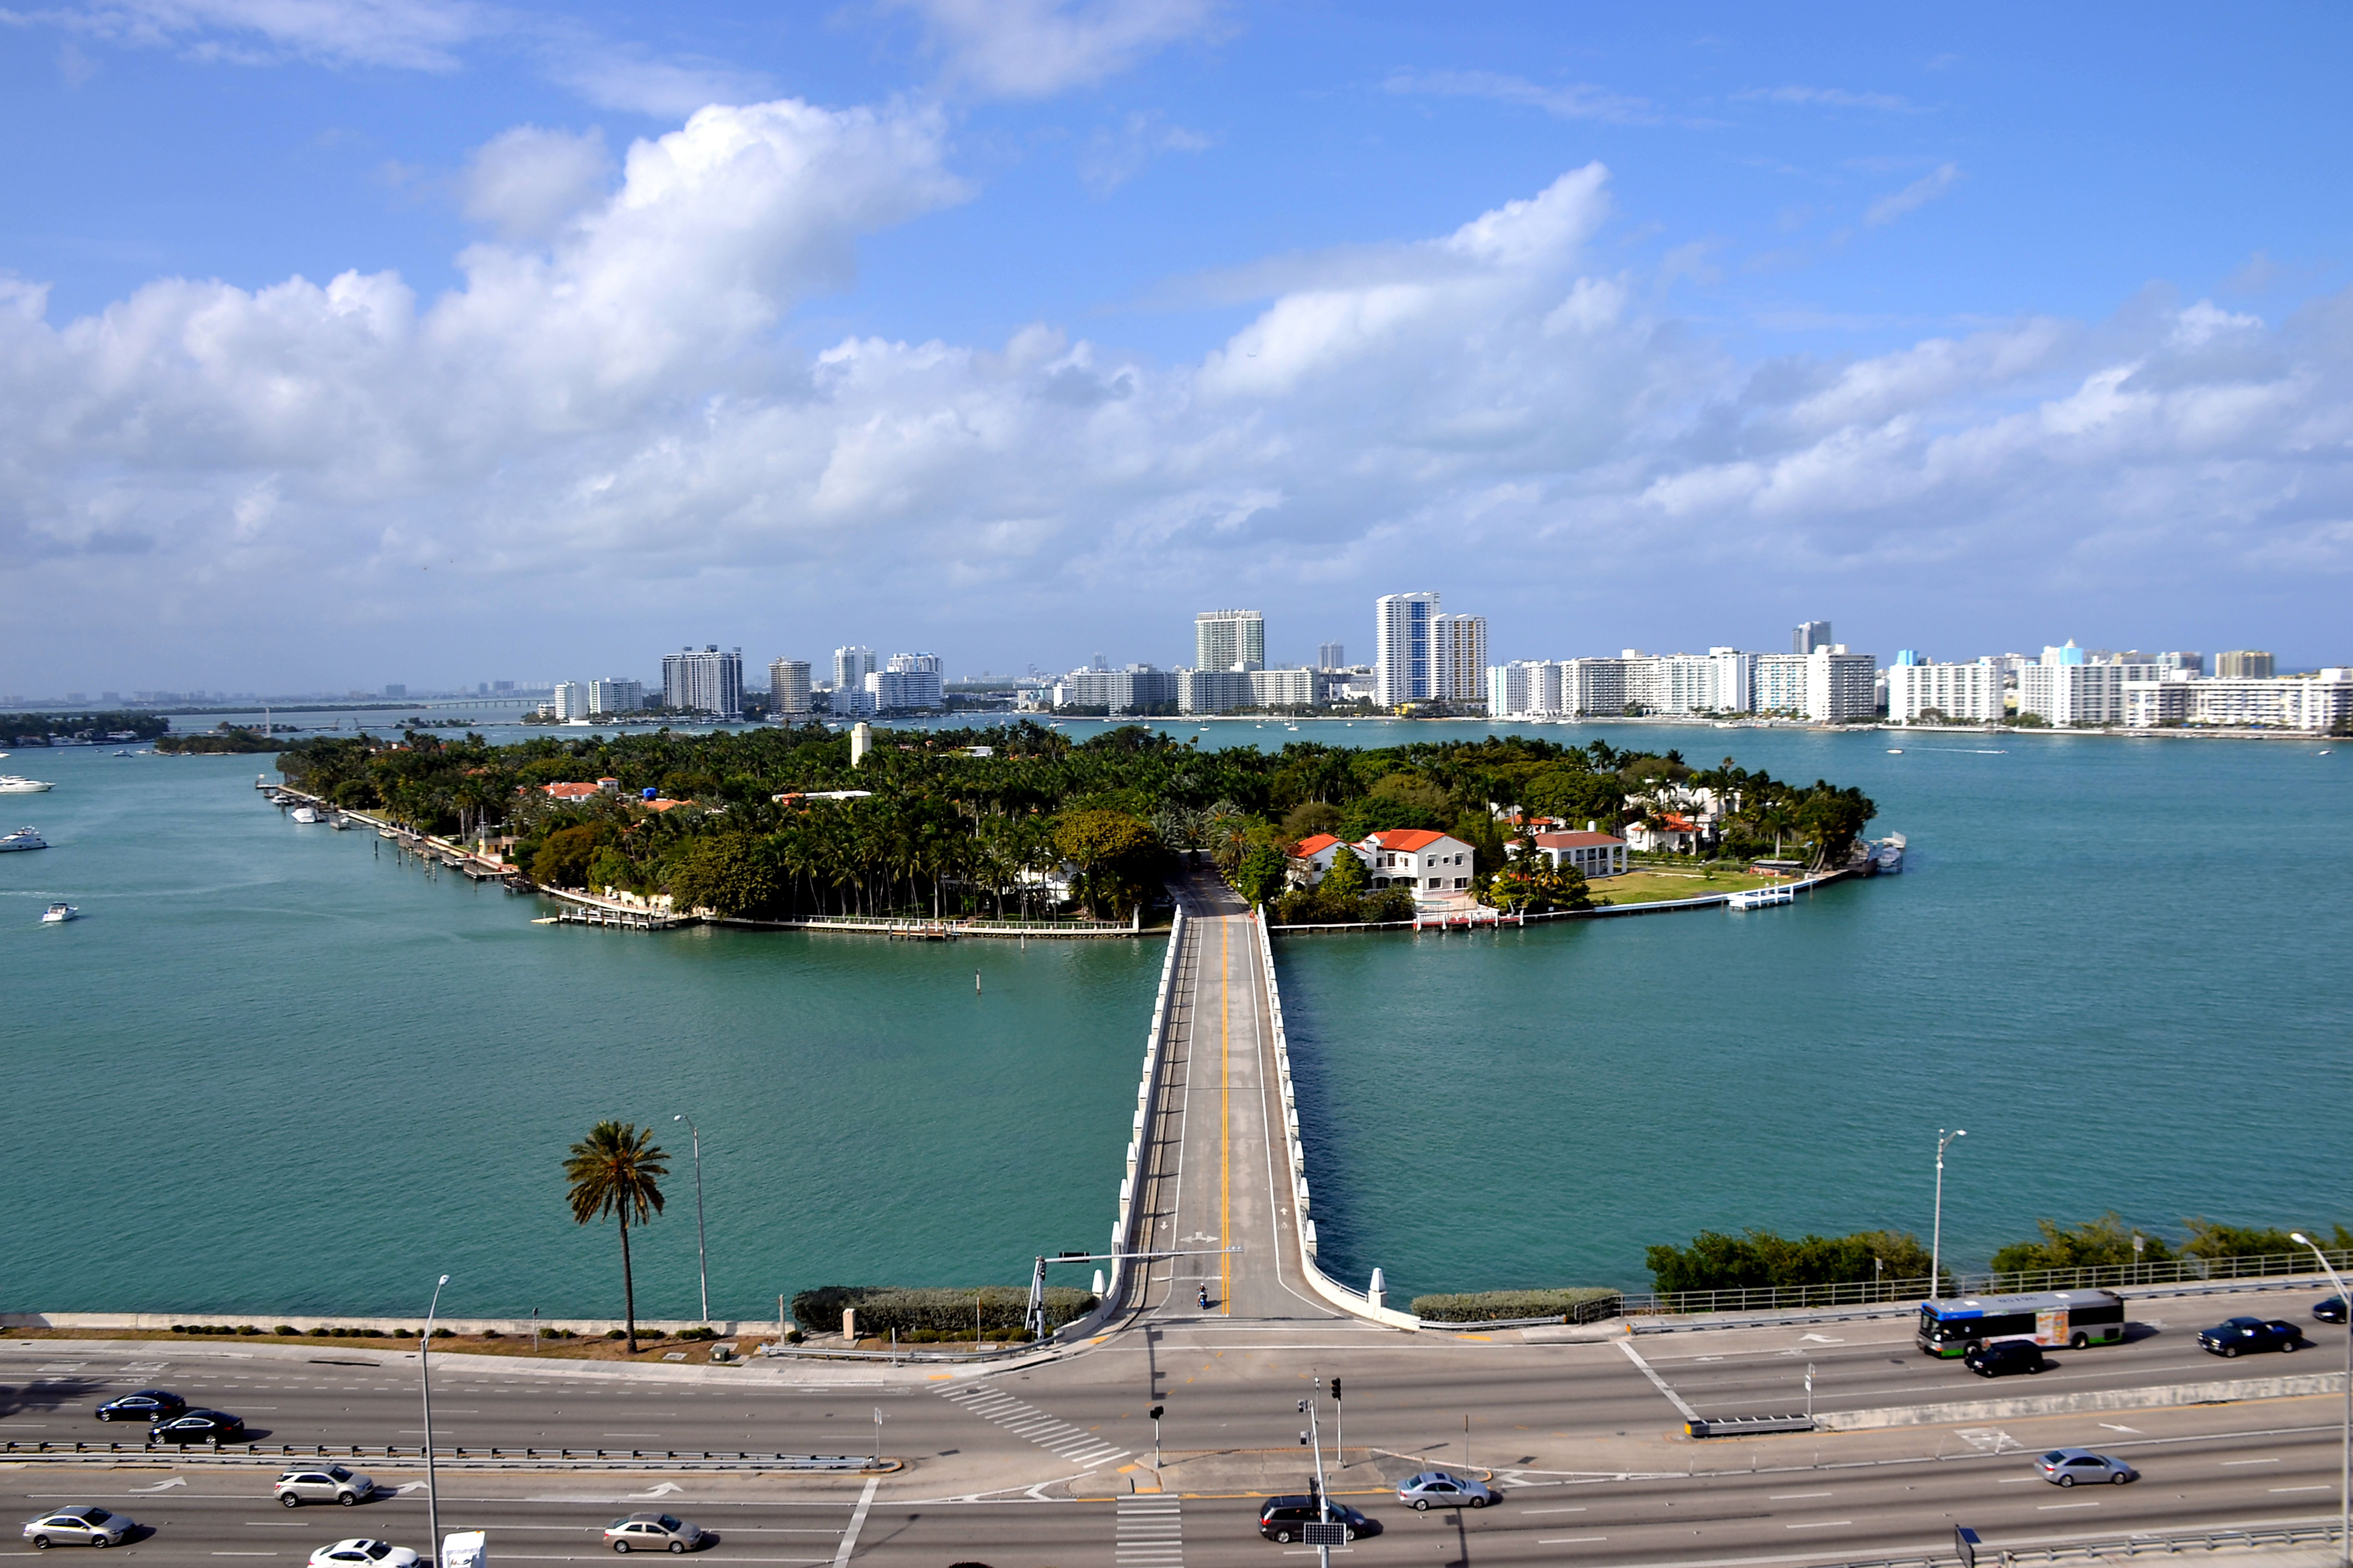 achat à Miami; beautiful view of Star Island Miami entrance